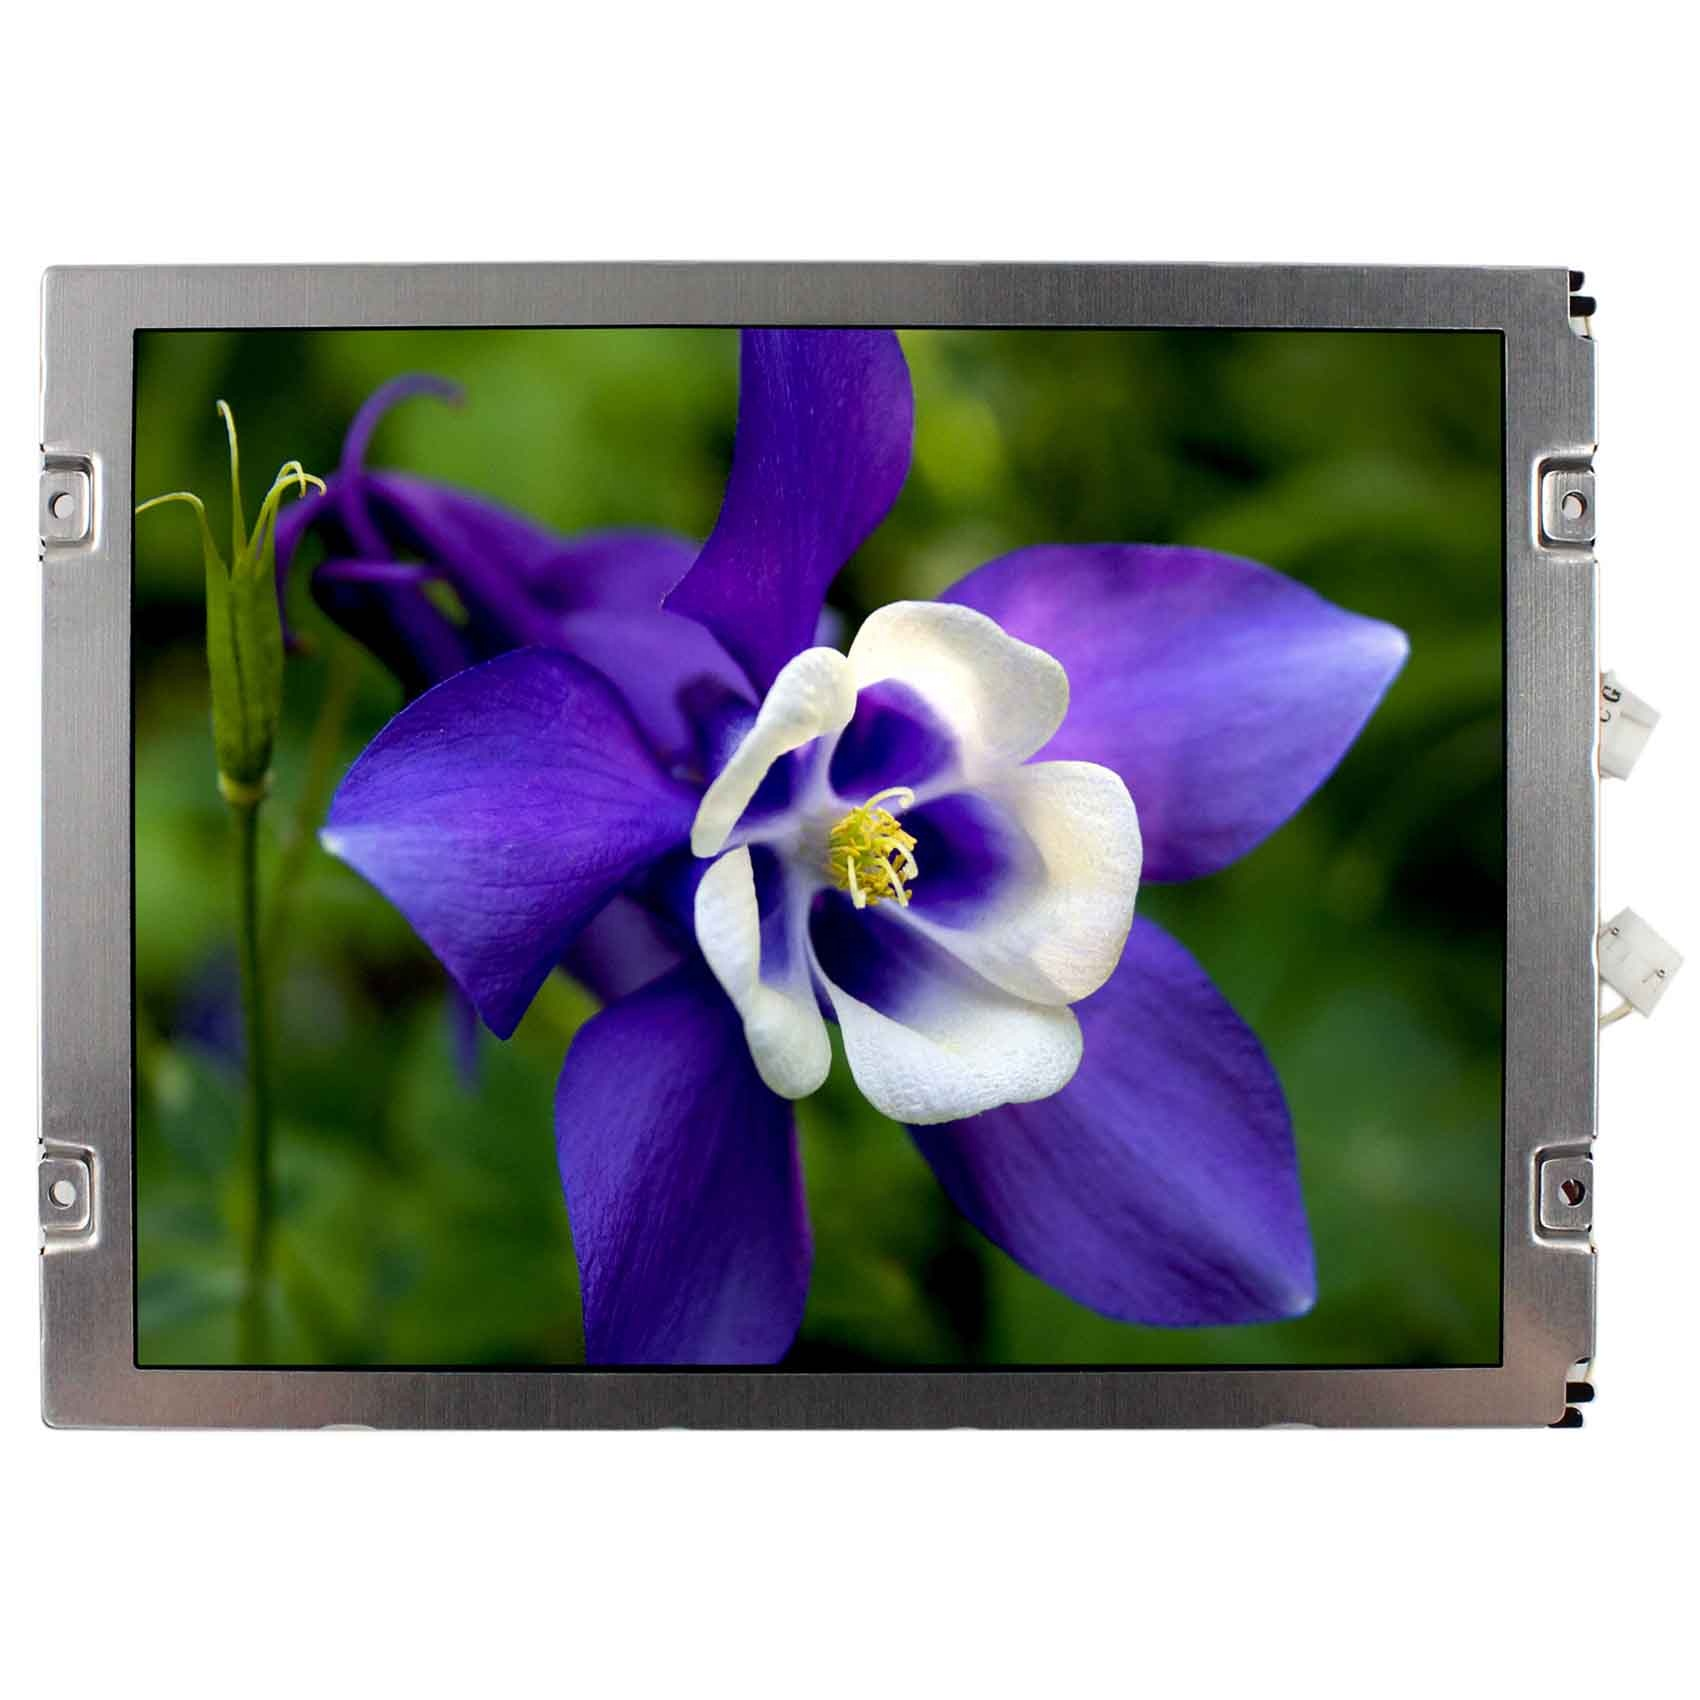 8.4 inch tft <strong>lcd</strong> monitor AA084VC03 640X480 IPS <strong>LCD</strong> Screen